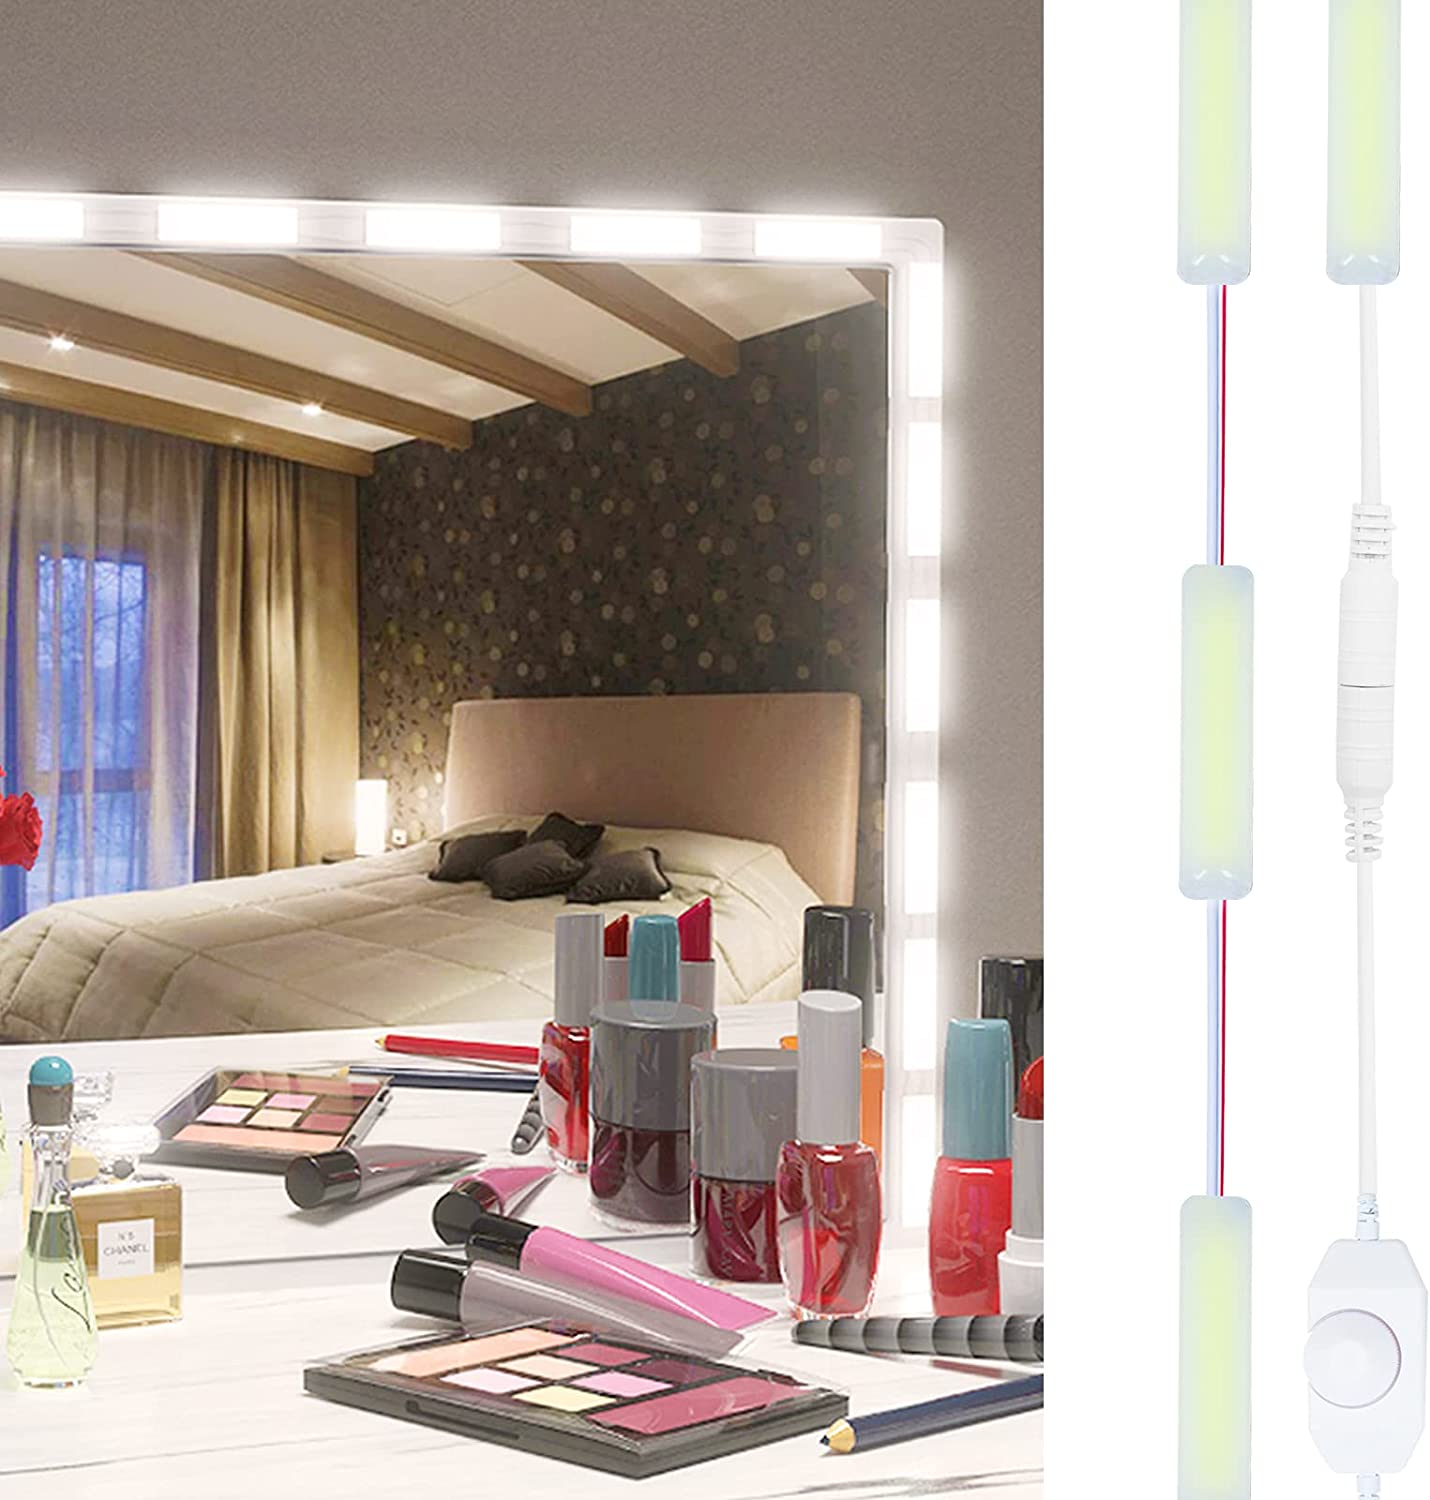 LED Vanity Mirror Lights, Hollywood Style Make Up Light 30PCS Ultra Bright White Dimmable Lights for Makeup Vanity Bathroom Mirror Ceremony Home Background Decoration, Mirror Not Included(30 in Set)